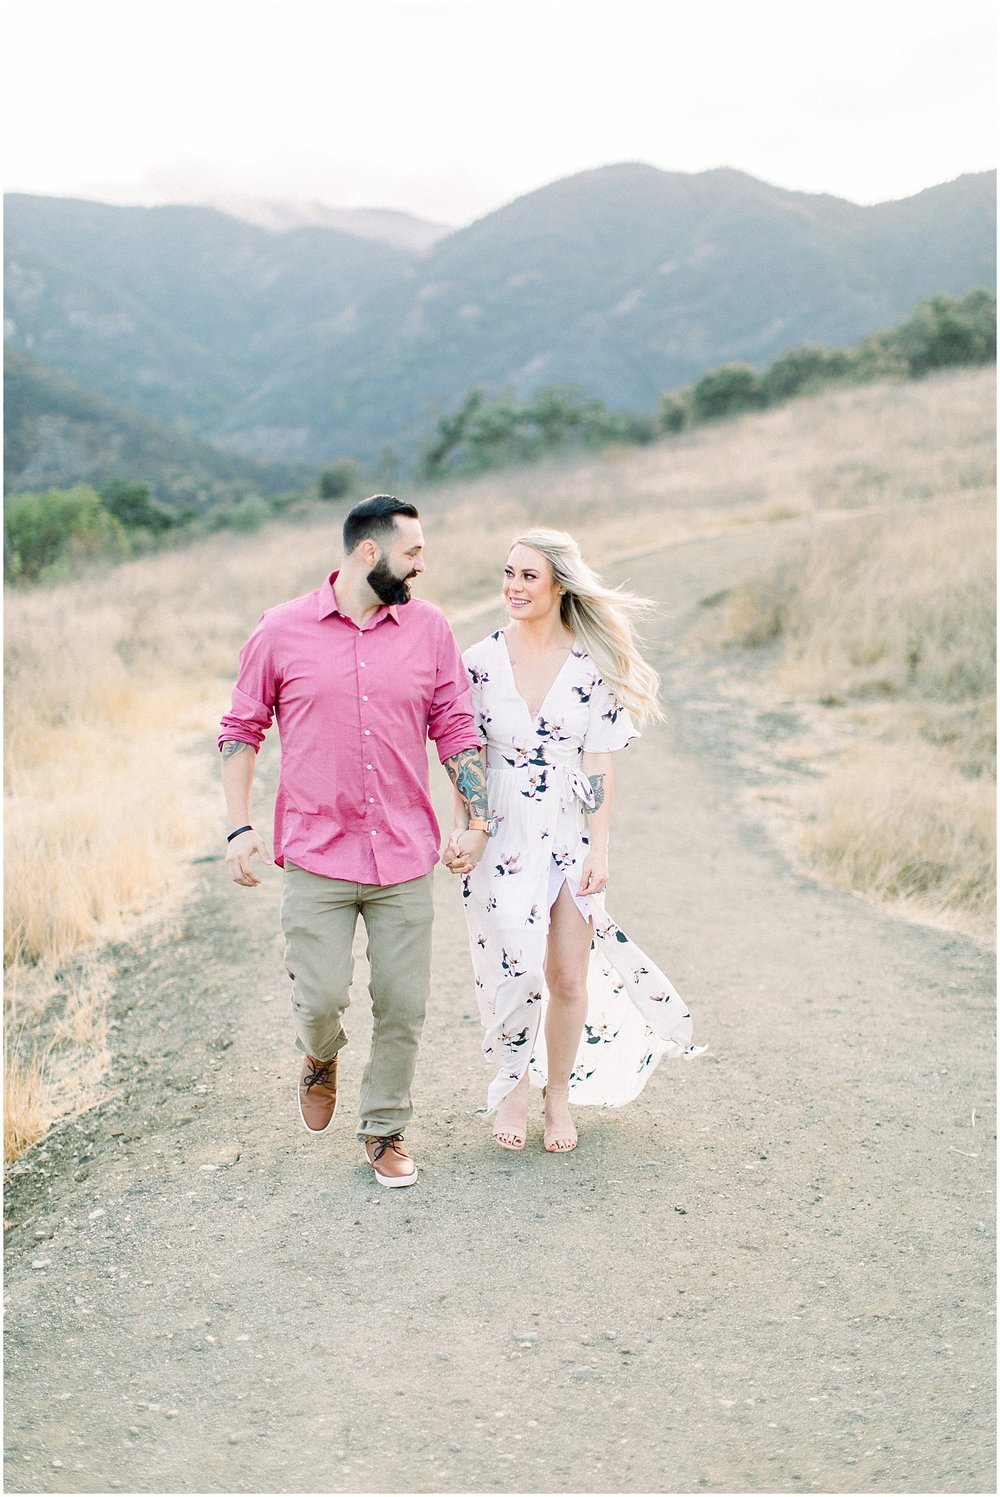 Santa Barbara Engagement | Kestrel Park Wedding | San Diego Wedding Photographer | Palm Springs Wedding Photographer | Joshua Tree Elopment_0049.jpg